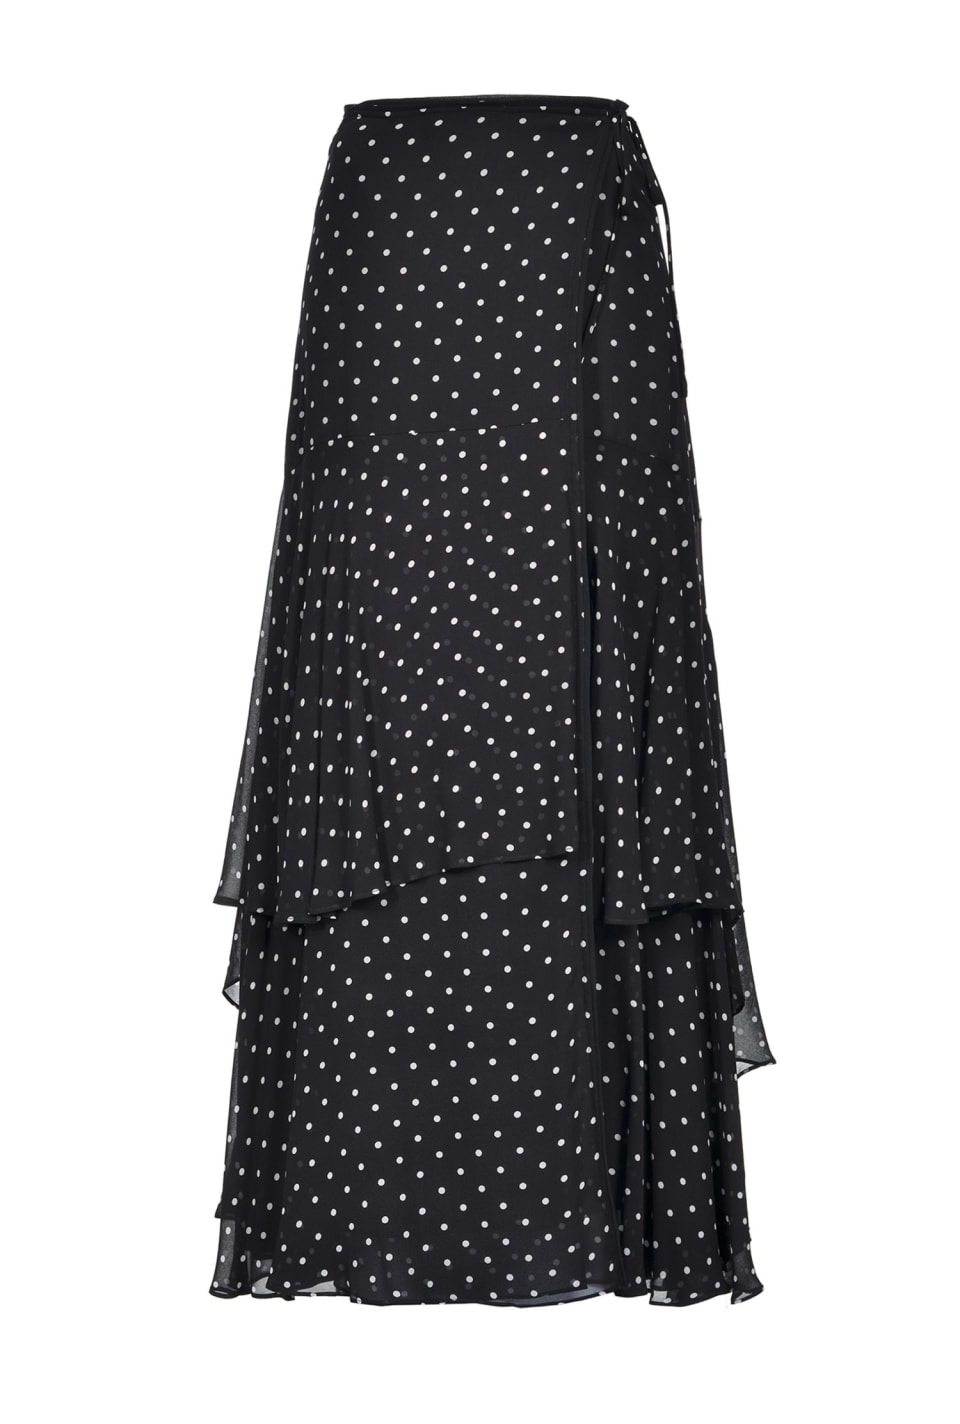 Maxi polka dot skirt